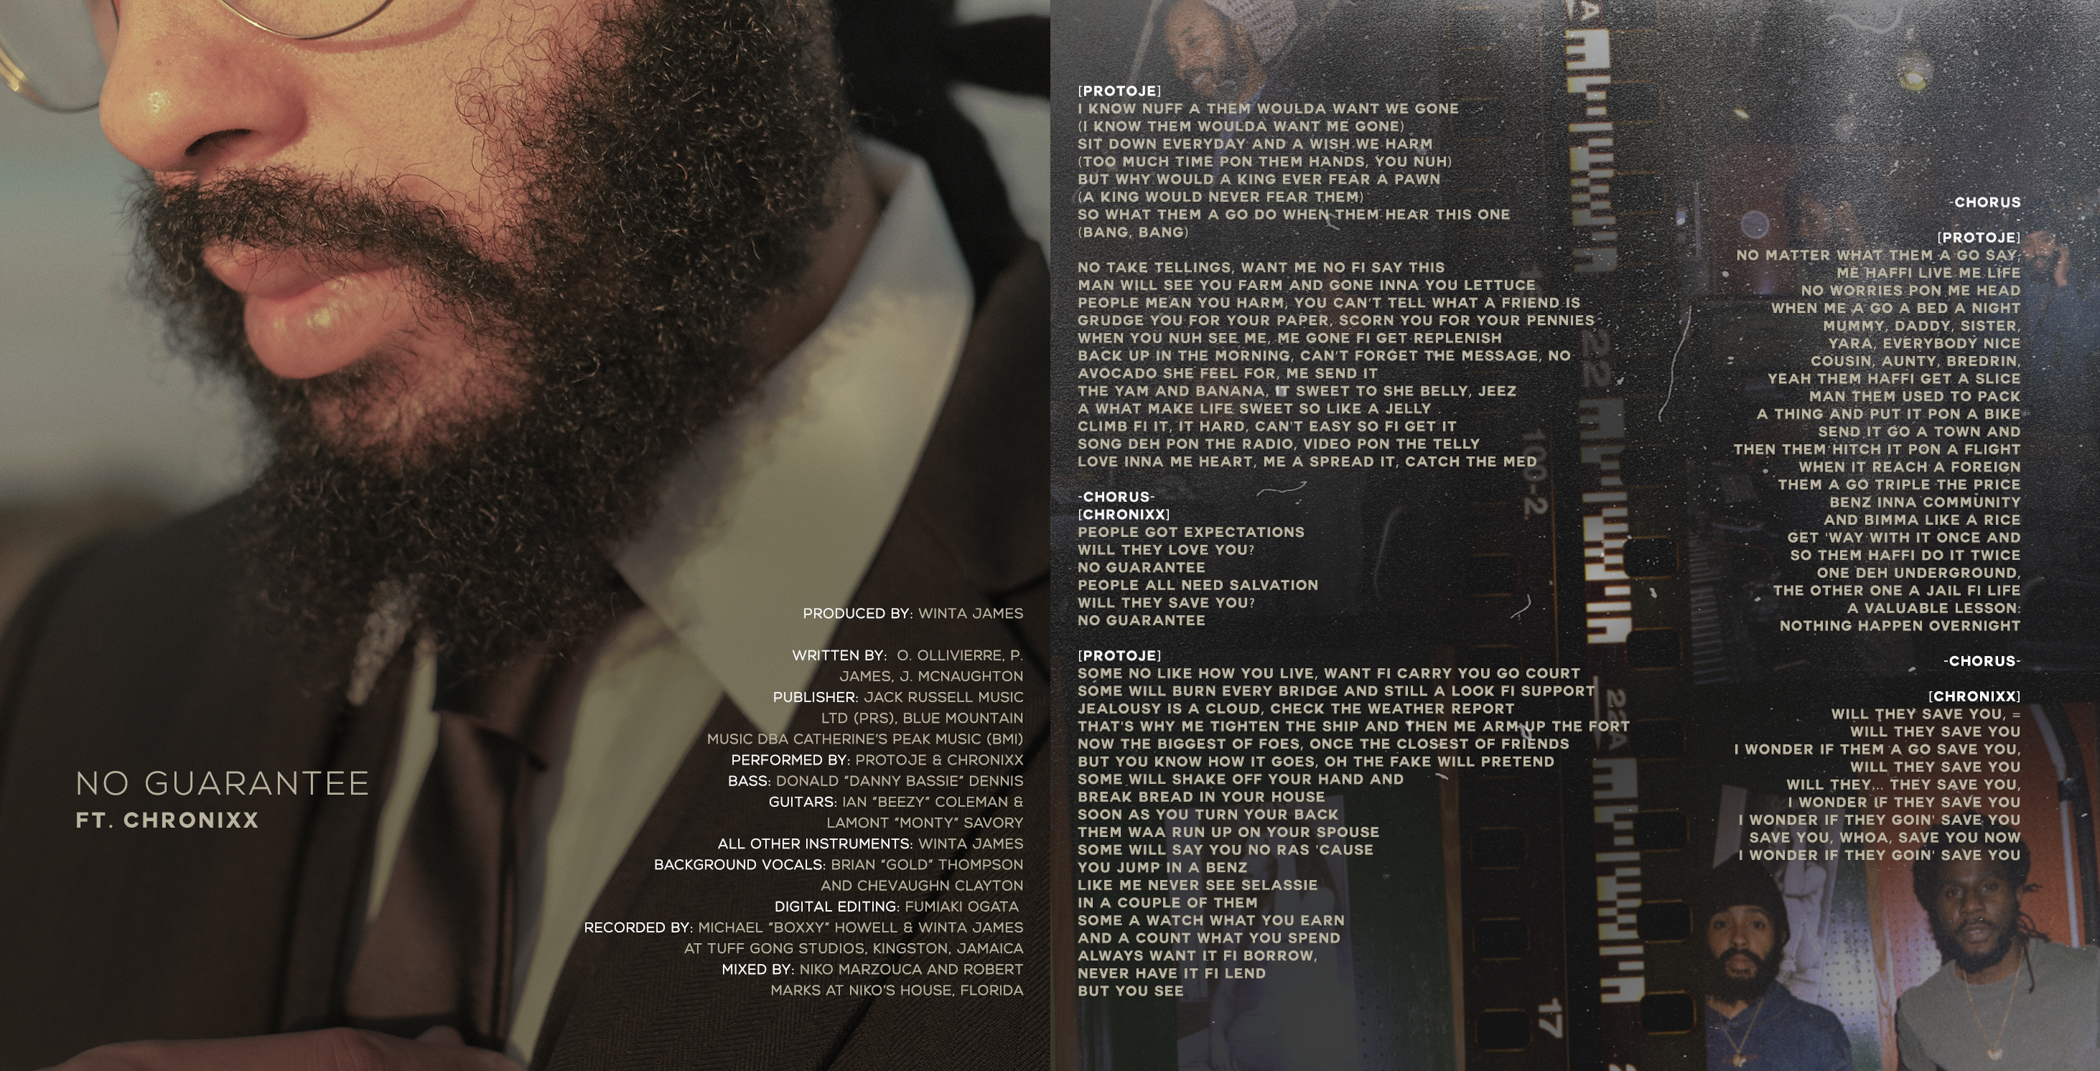 A_Matter_of_Time_Protoje_2018_Nkosi_Booklet_Design (11 of 12).jpg